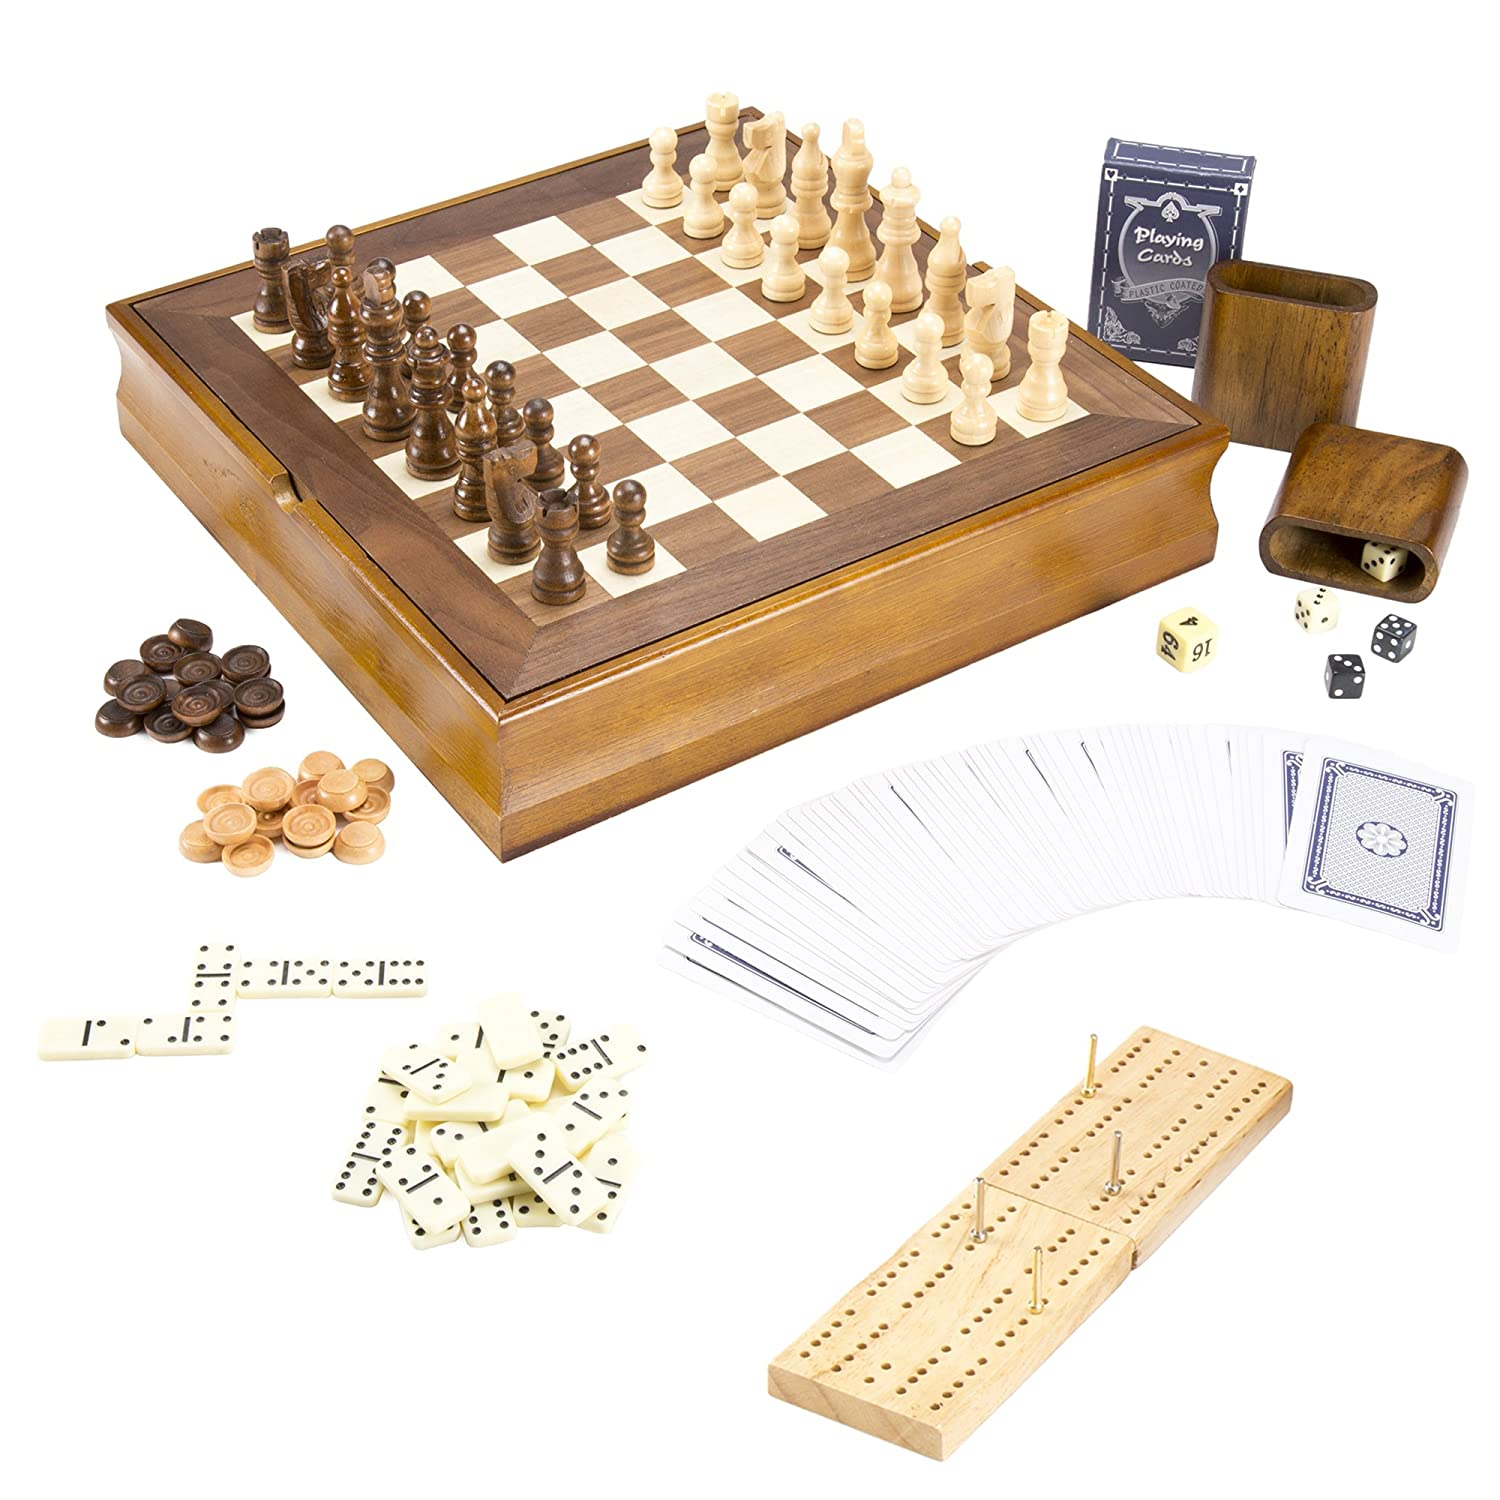 Wood Chess 7 Games in1 Combo Set with Chess, Checkers, Cribbage, Backgammon, Dominos, Poker & Dice - Includes Bonus Deck of Cards!